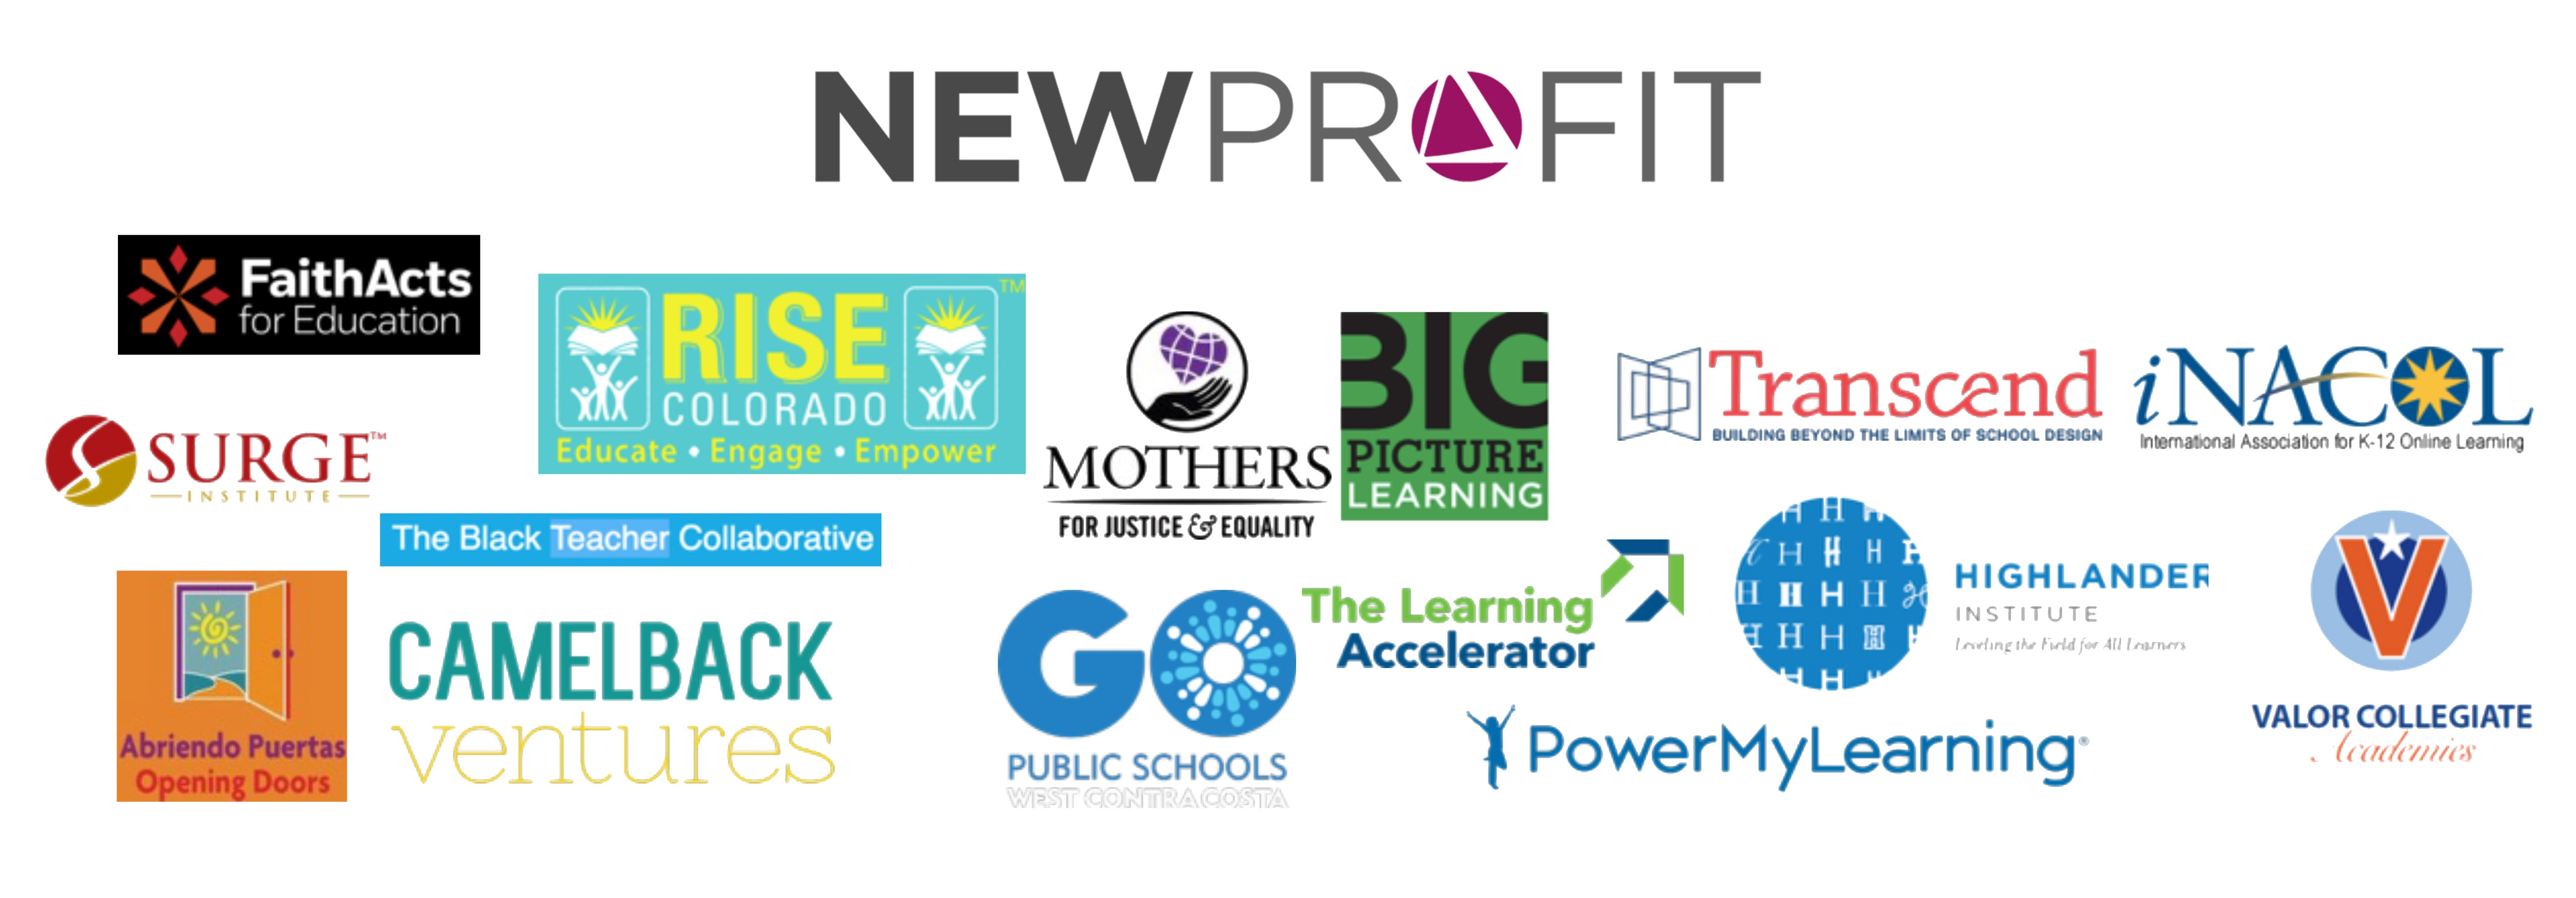 New Profit Launches Two Education Initiatives Aimed at Inclusive Social Entrepreneurship and Personalized Learning